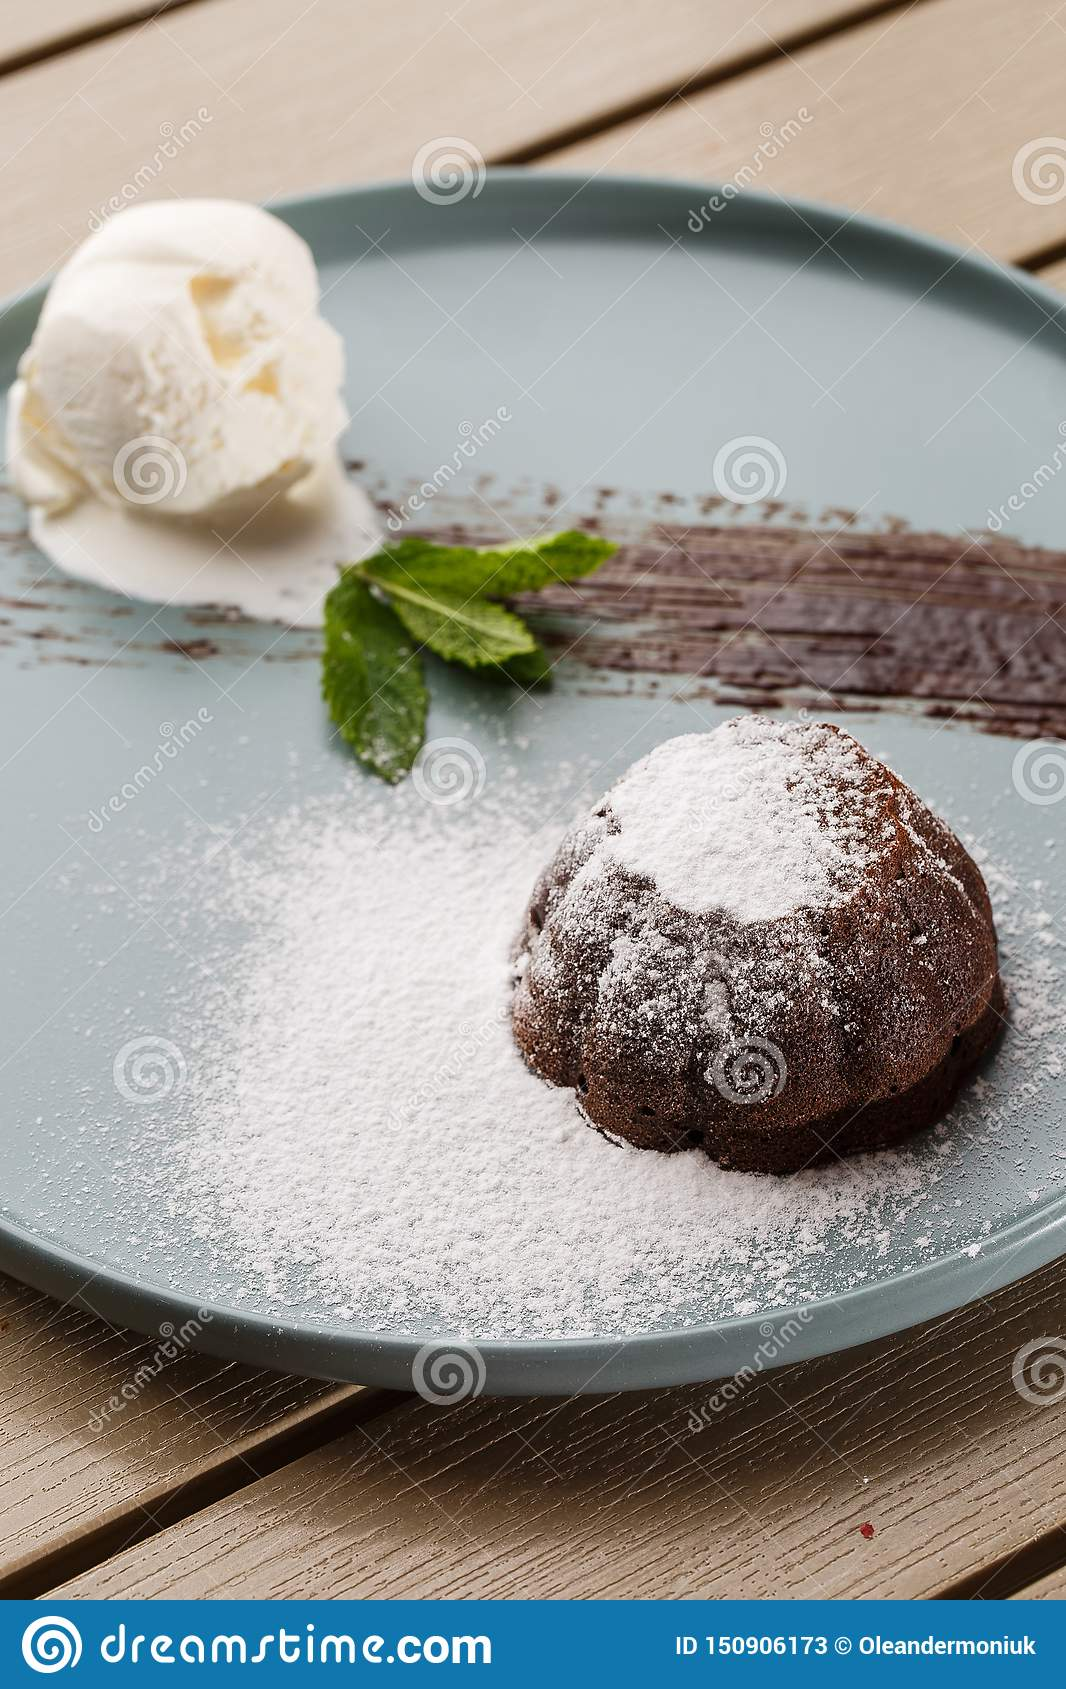 Delicious fresh fondant with hot chocolate and ice cream and mint served on plate. Lava cake recipe. Wooden background.